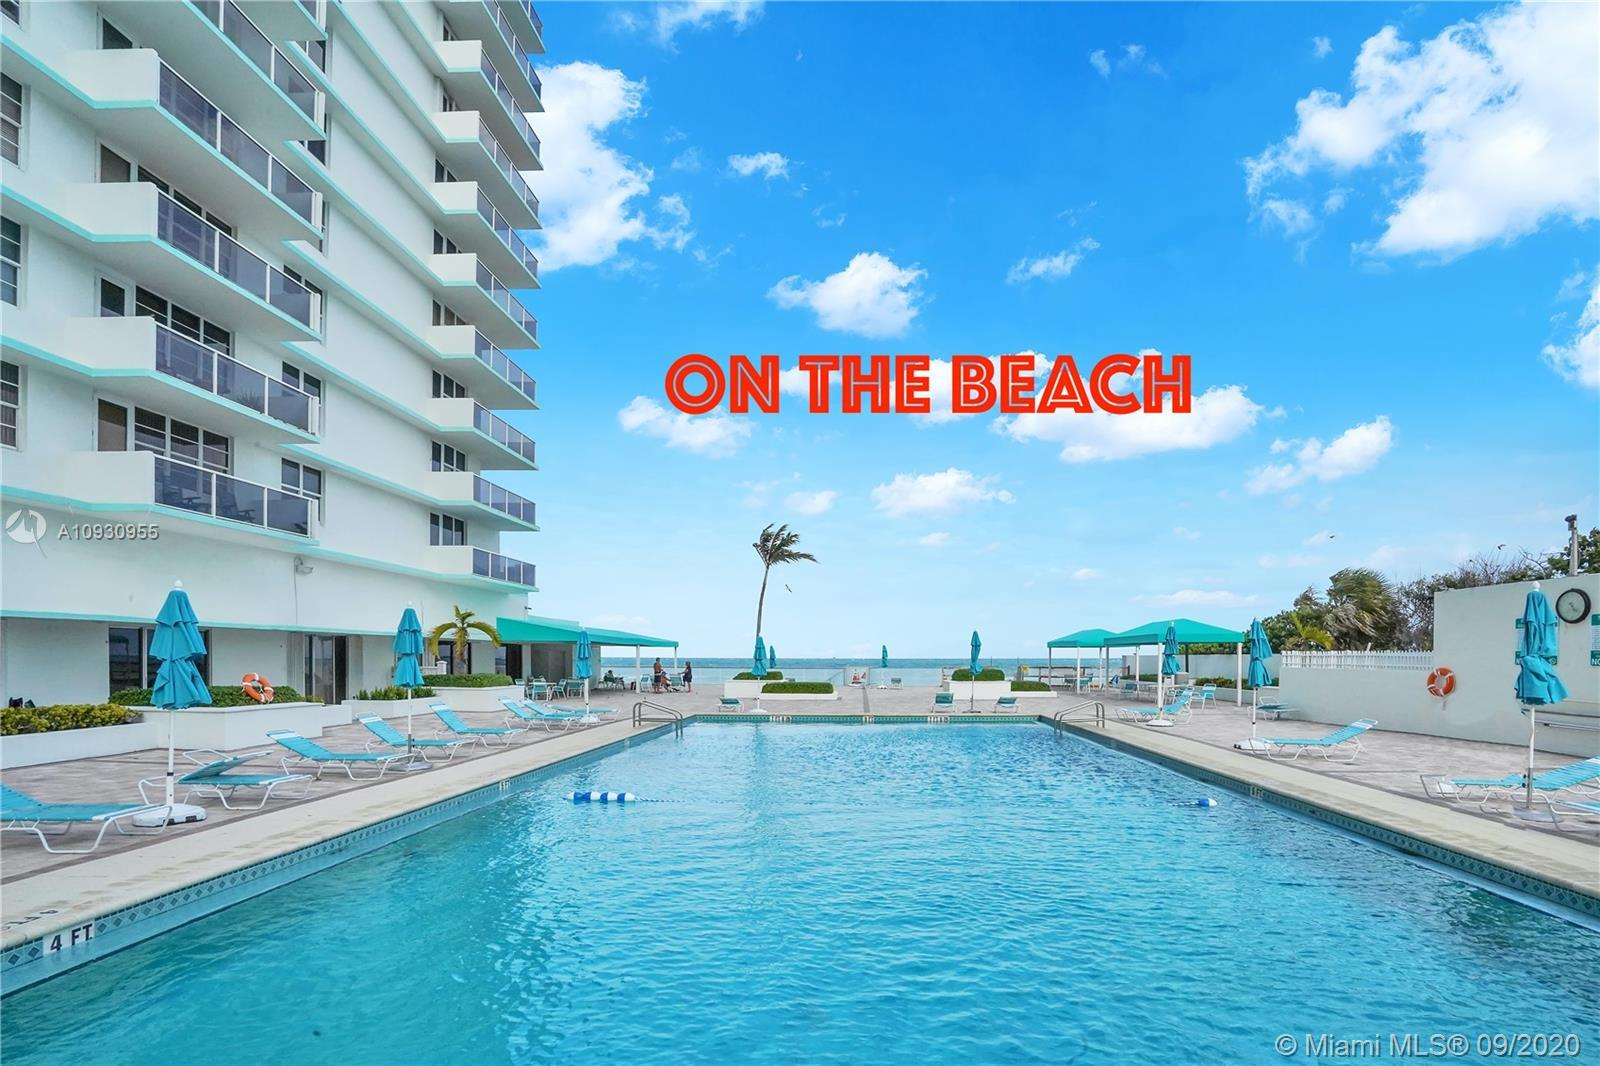 LARGE 2 BEDS/ 2 BATHS DIRECT ON THE BEACH.INTERCOASTAL VIEW AND DIRECT ACCESS OCEAN.SPECIAL INVESTOR